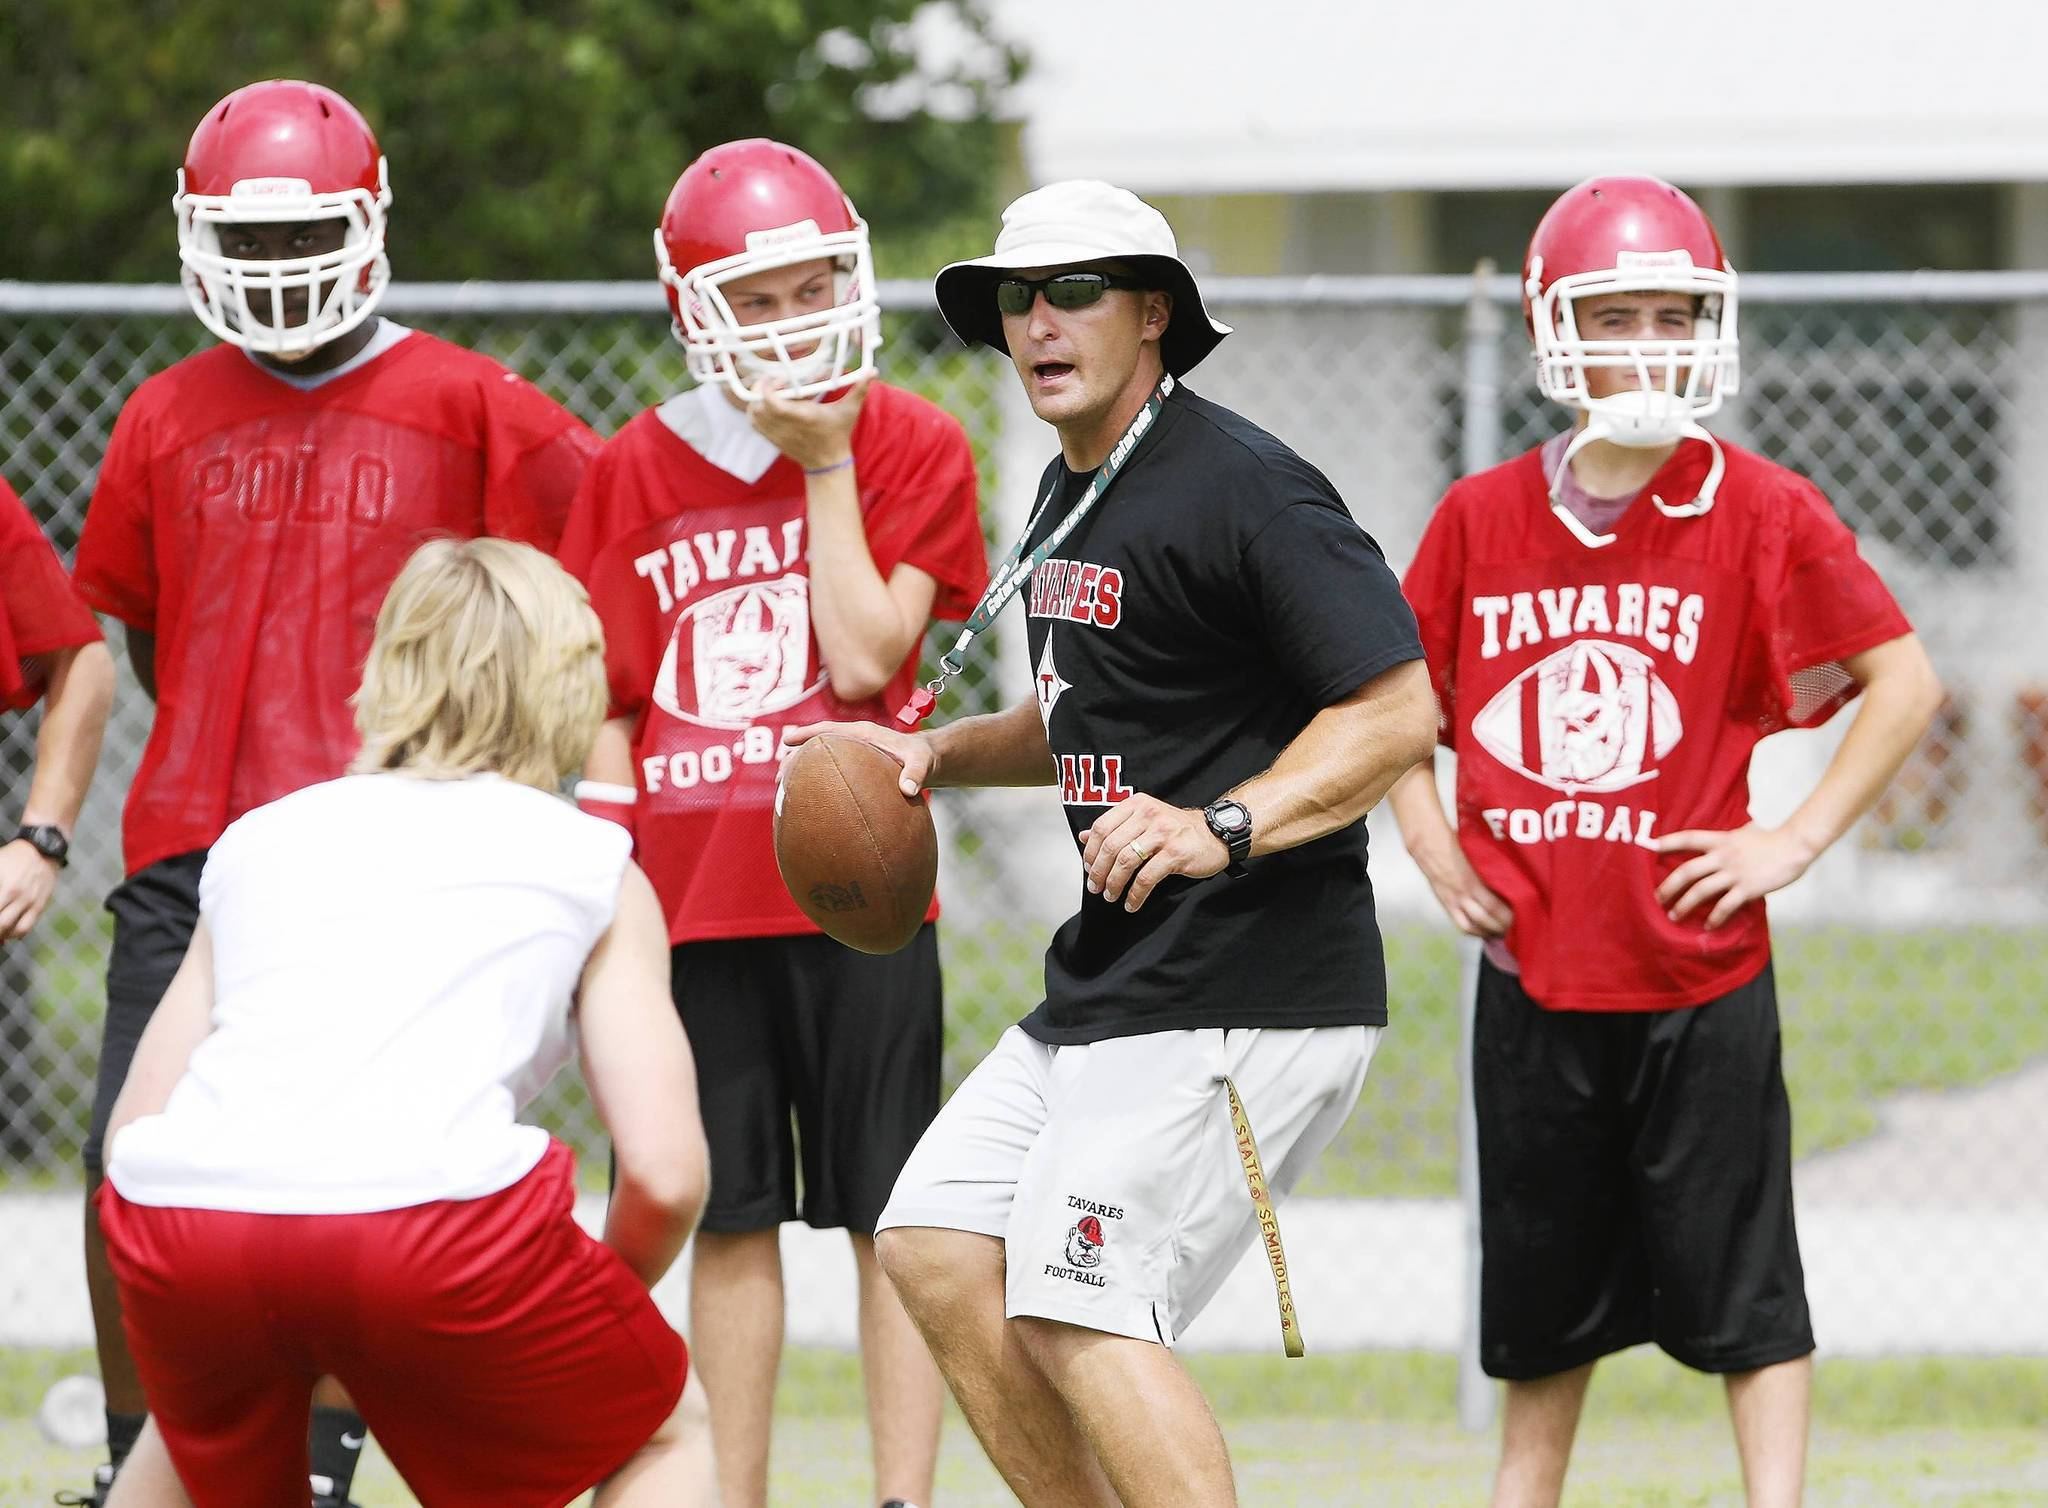 Tavares coach Chris Gauntlett drills players on Tuesday, August 7, 2012. Practice got under way this week for high school teams.  (Tom Benitez/Orlando Sentinel)